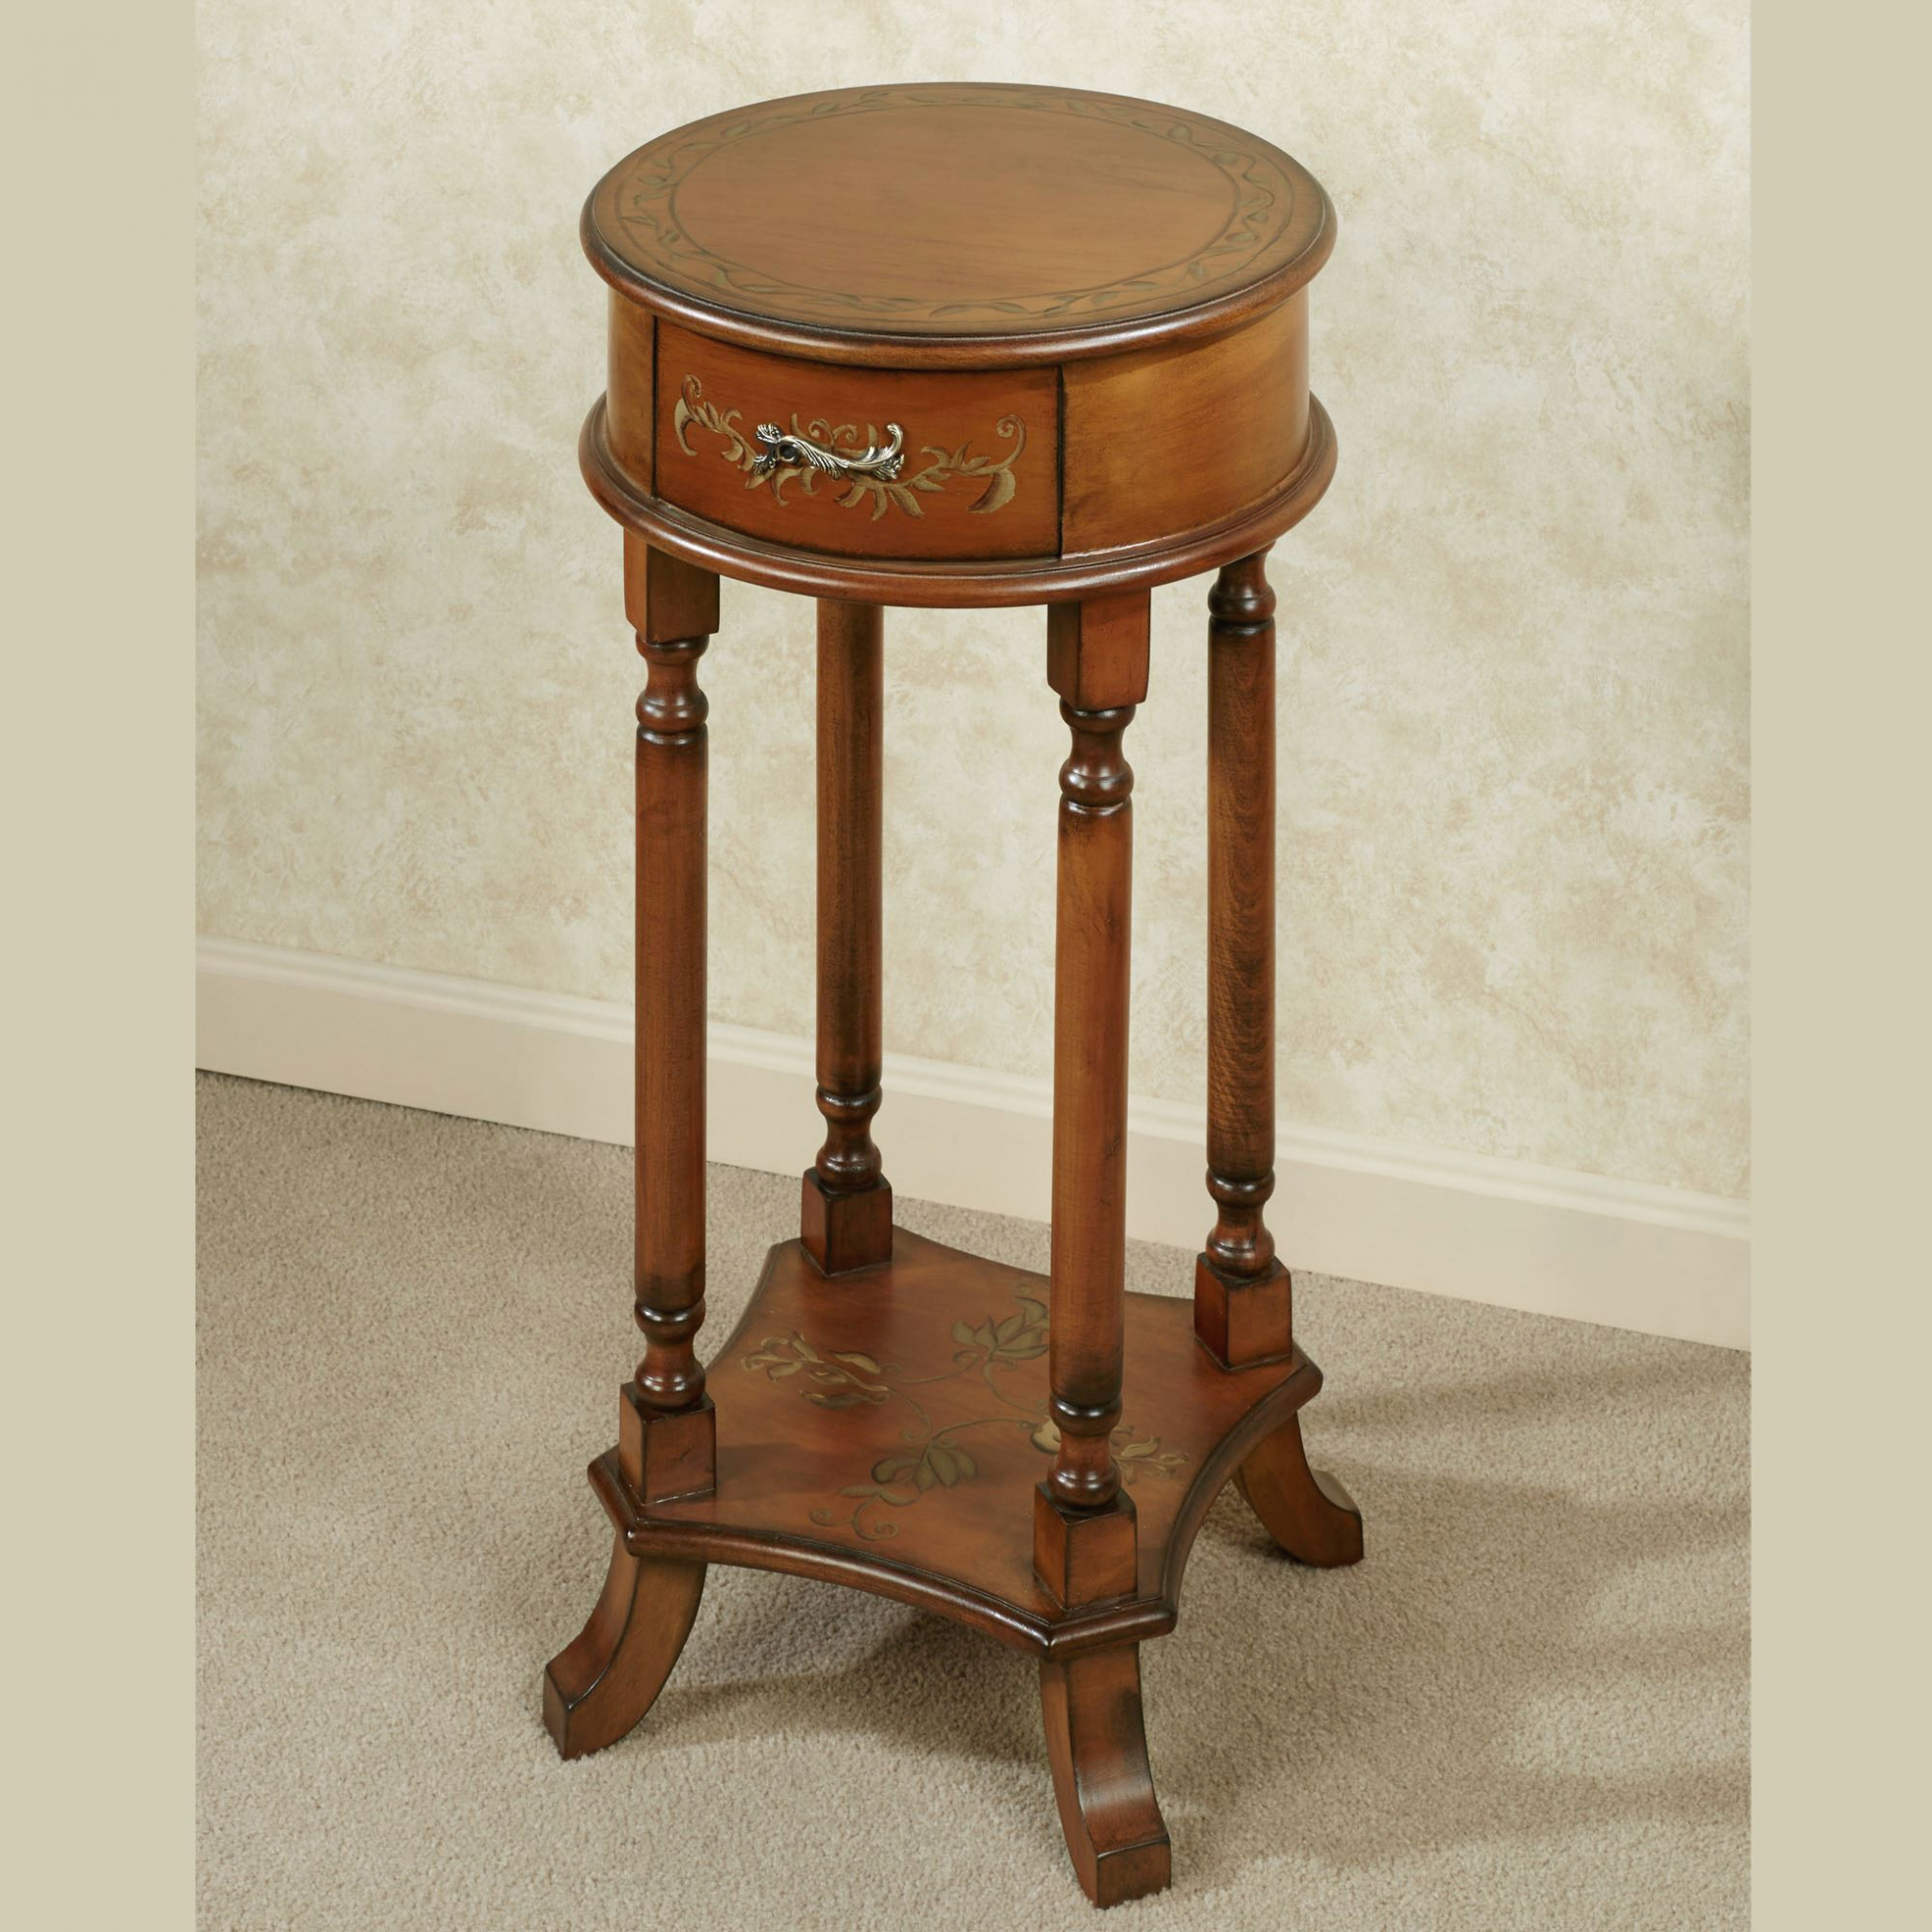 furniture trellis round accent table with regard small wood antique oak charming your house idea embroidered tablecloth bedroom essentials distressed coffee and end tables pulls